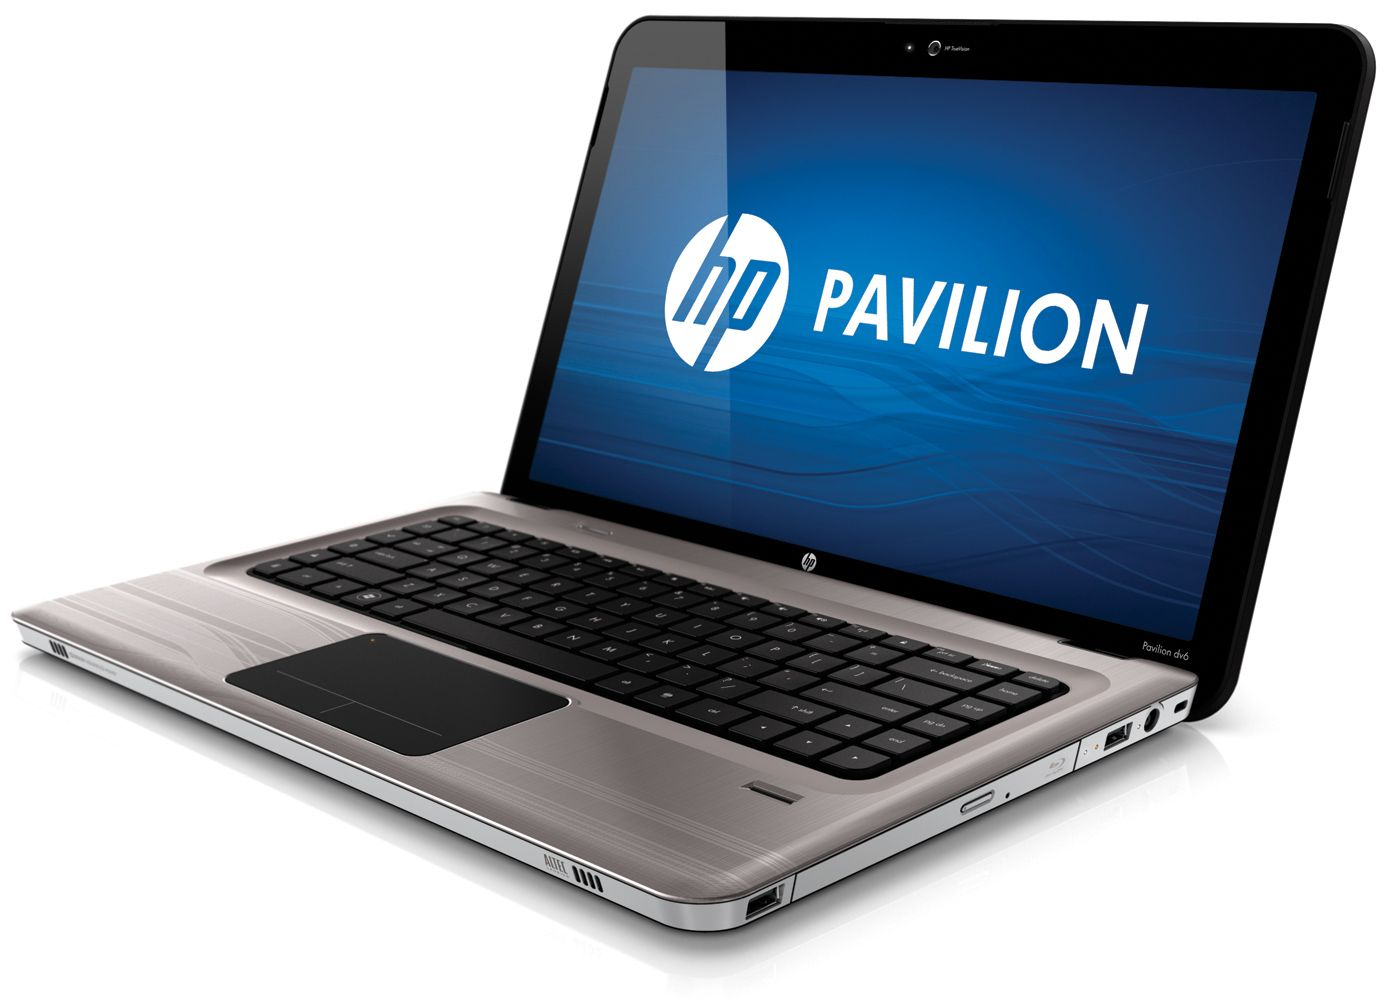 HP pavilion dv6t quad edition 1080P